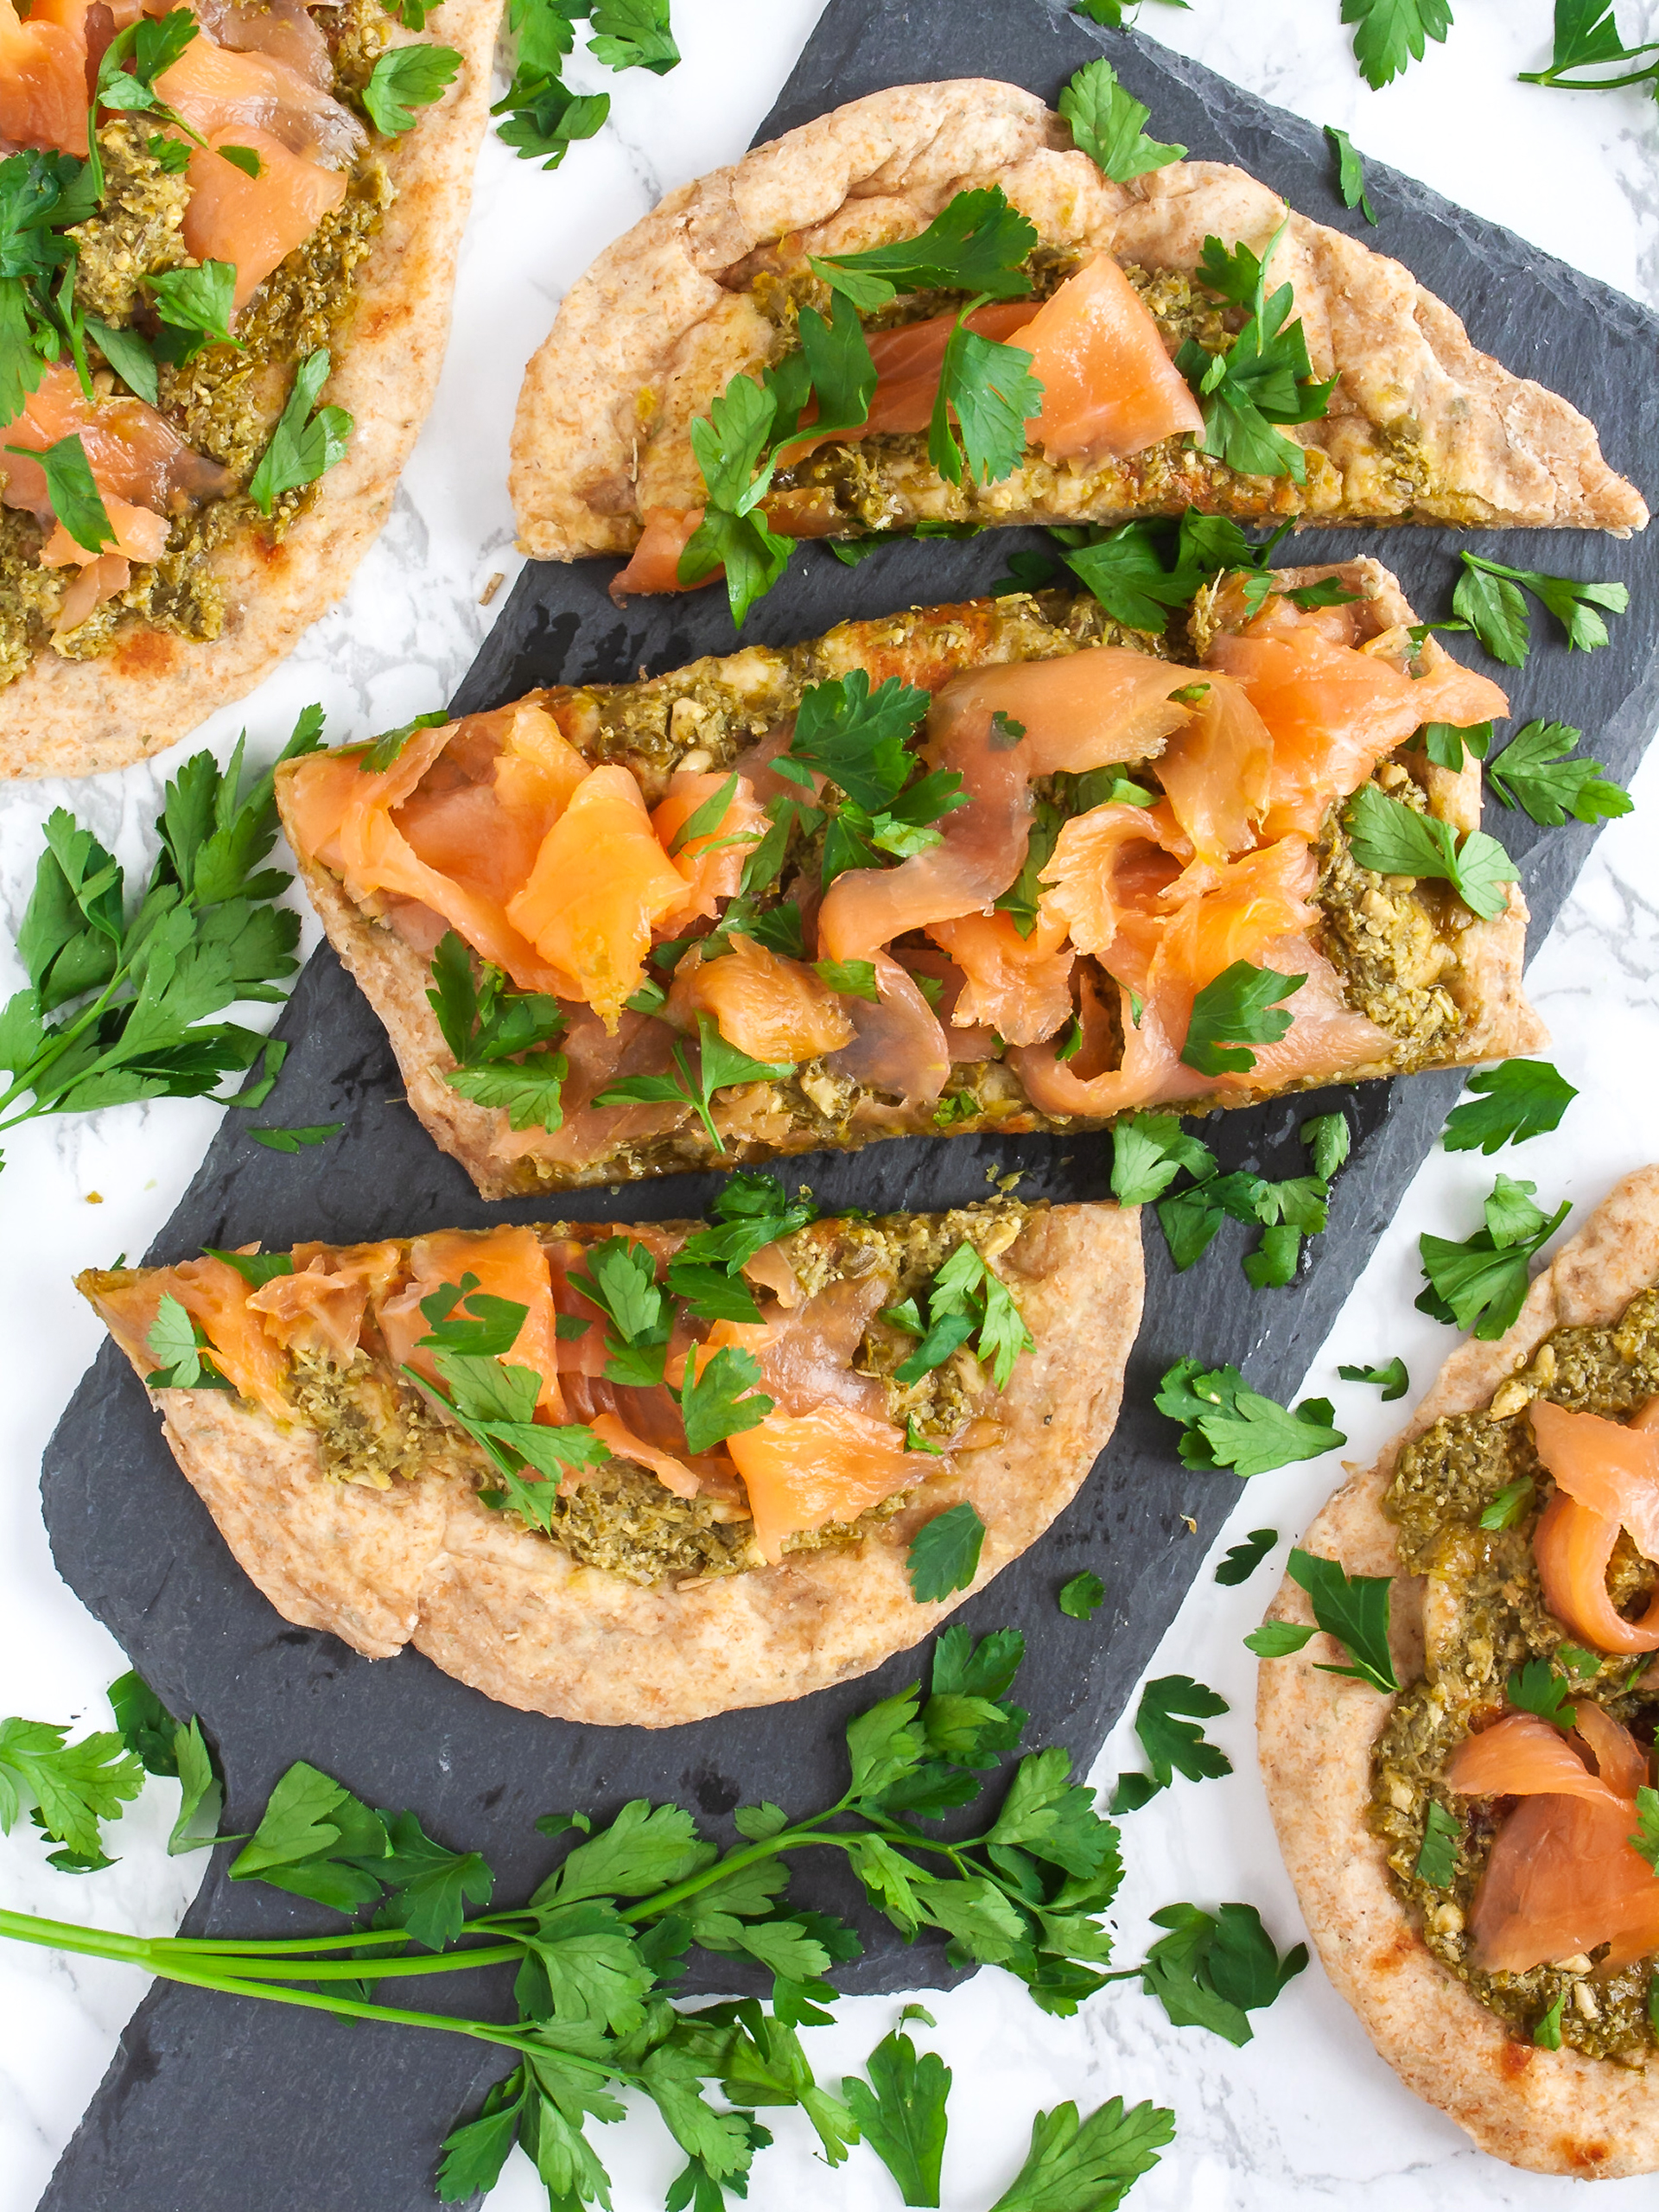 Smoked Salmon Flatbread with Pesto Recipe Thumbnail